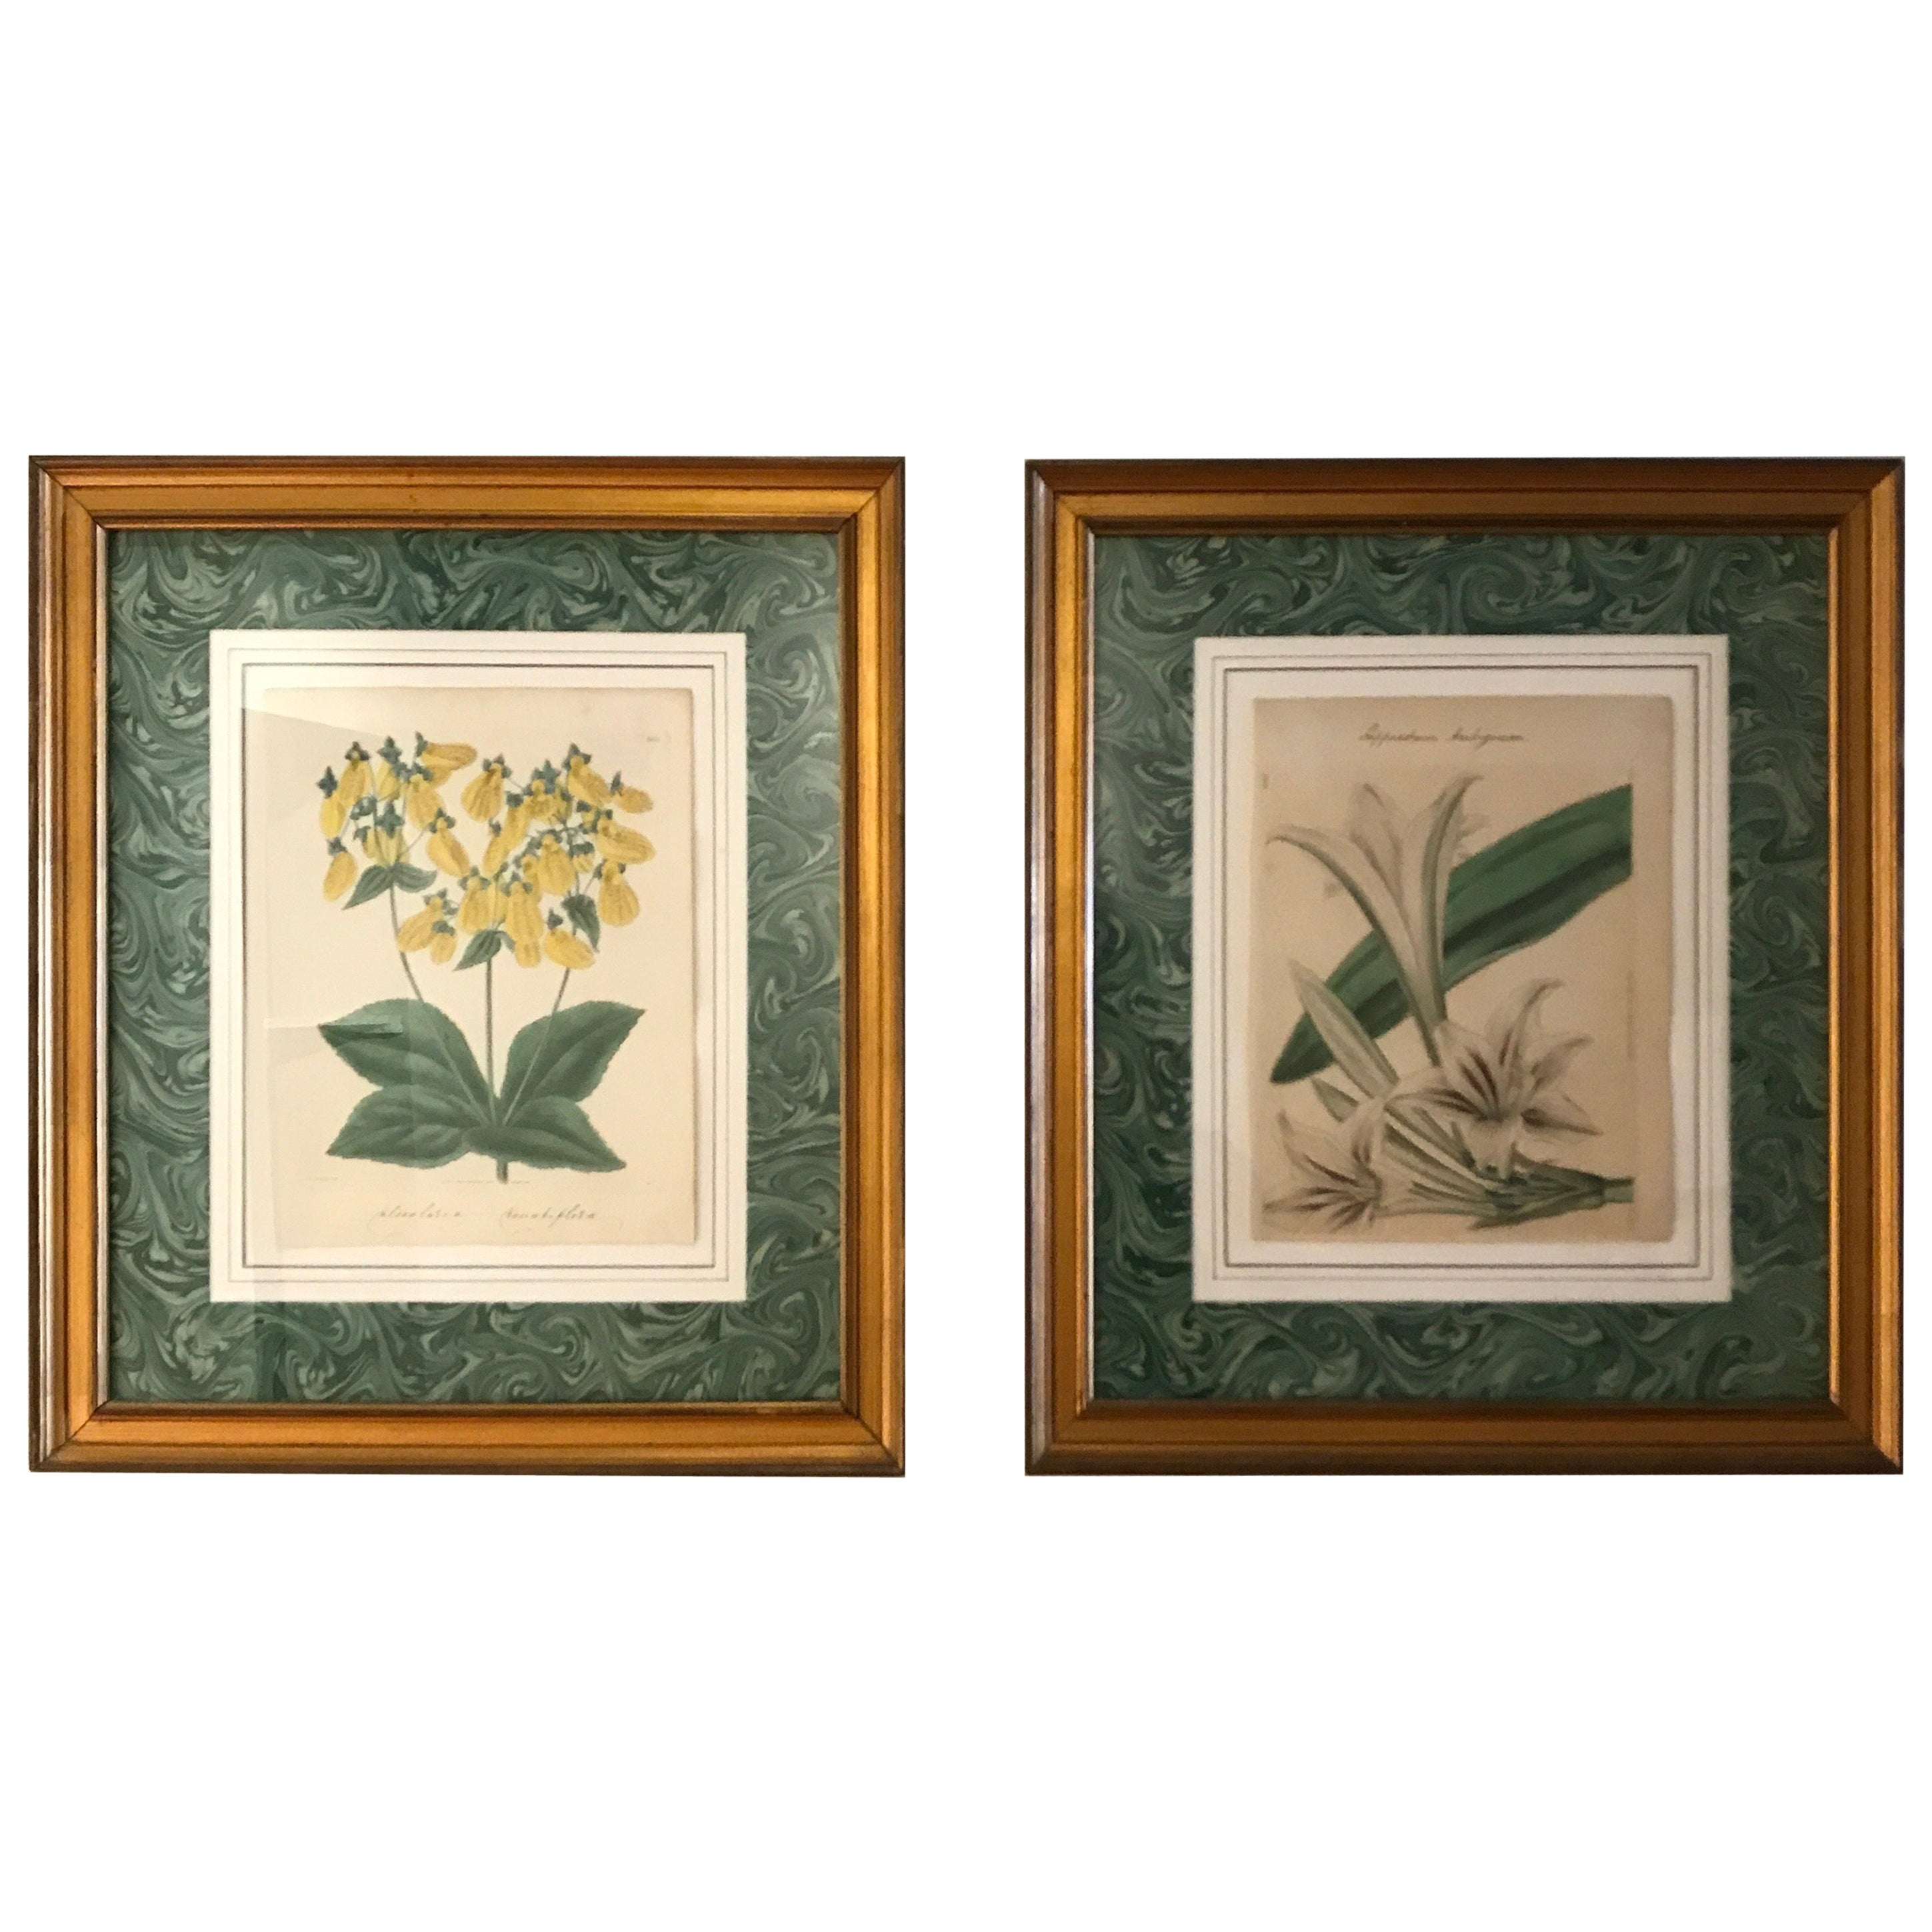 Pair of Original Antique Hand Colored Botanical Engravings